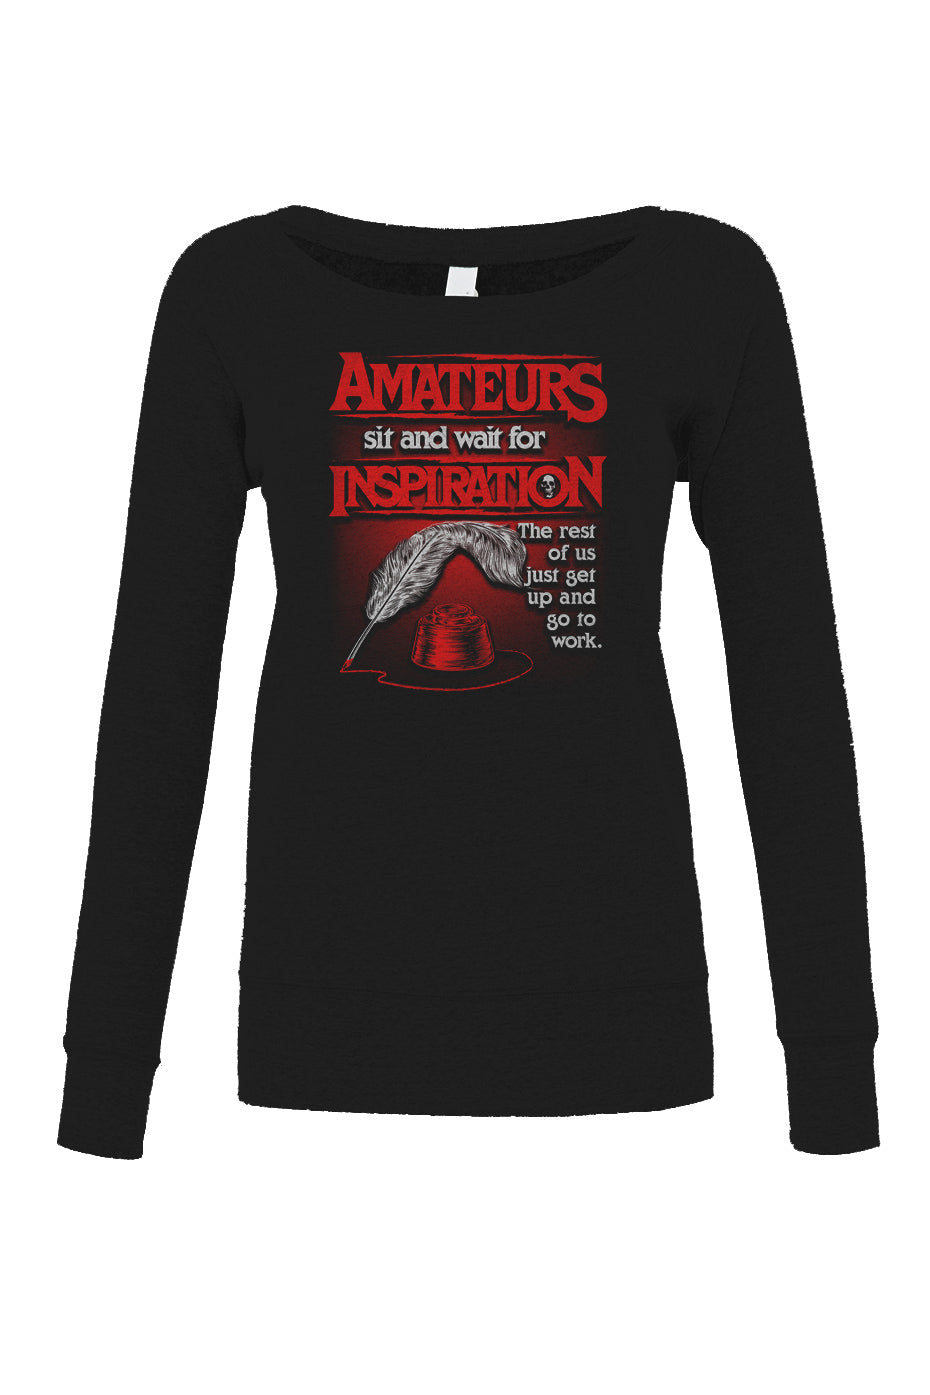 Women's Amateurs Wait for Inspiration Scoop Neck Fleece